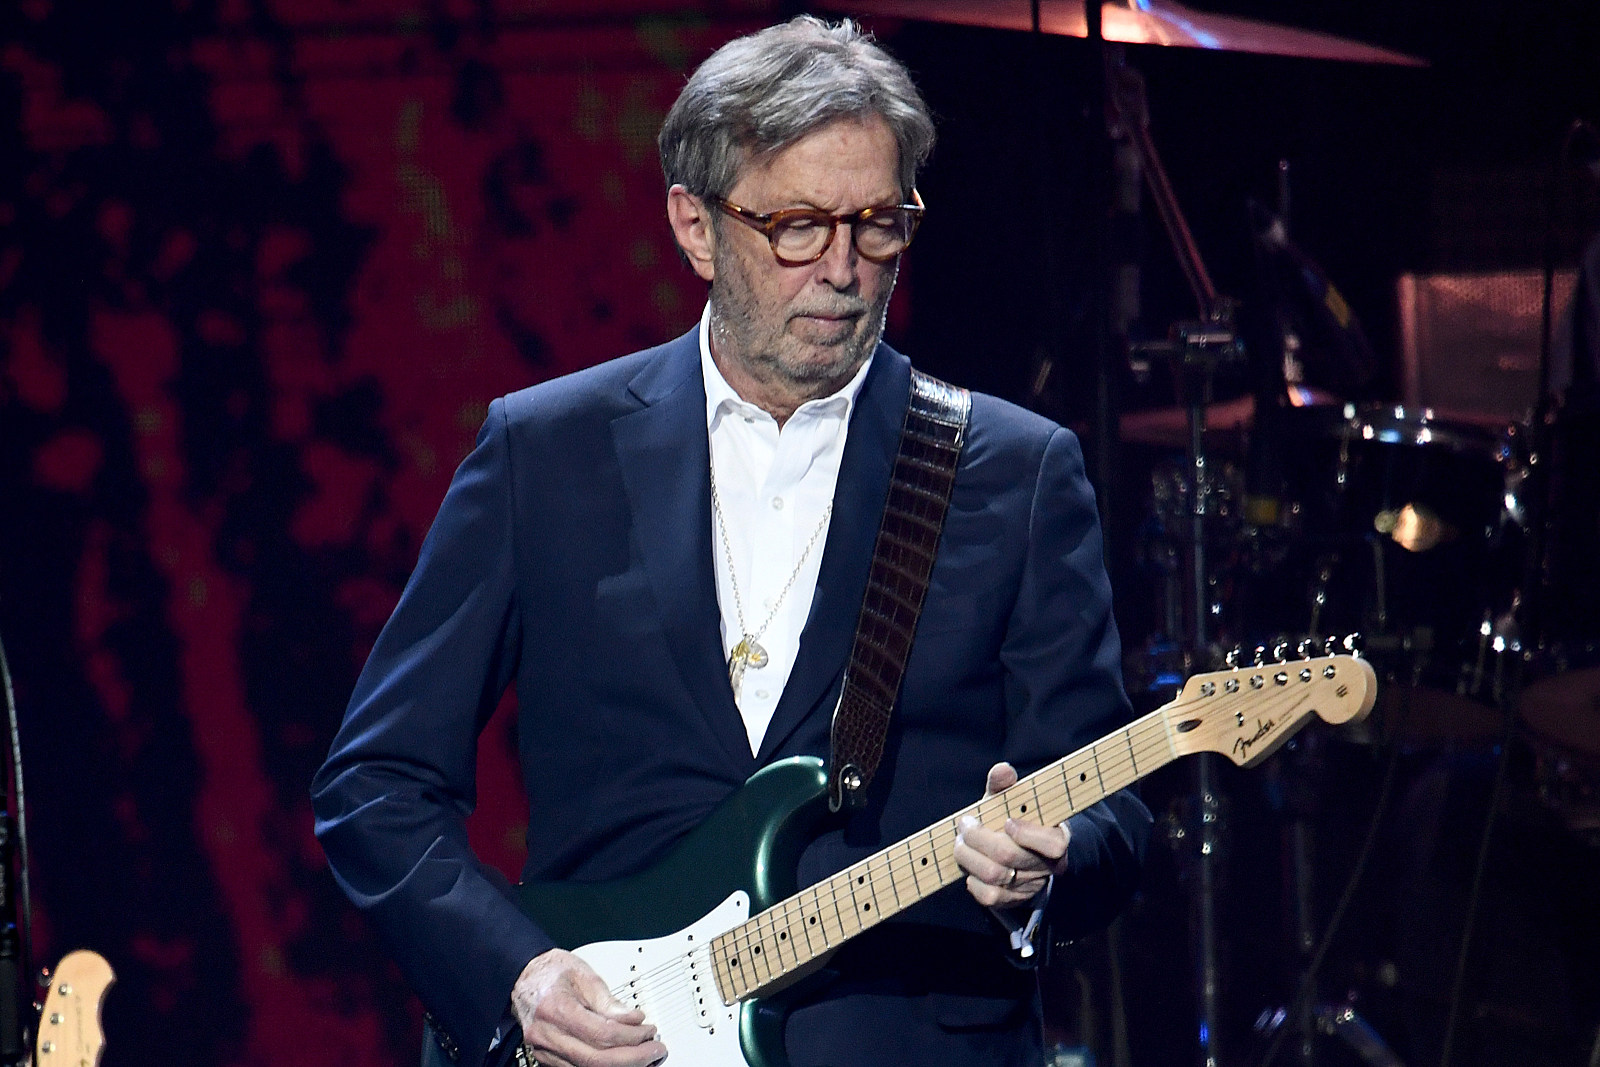 Eric Clapton Feels 'Ostracized' By Friends Over His COVID Views